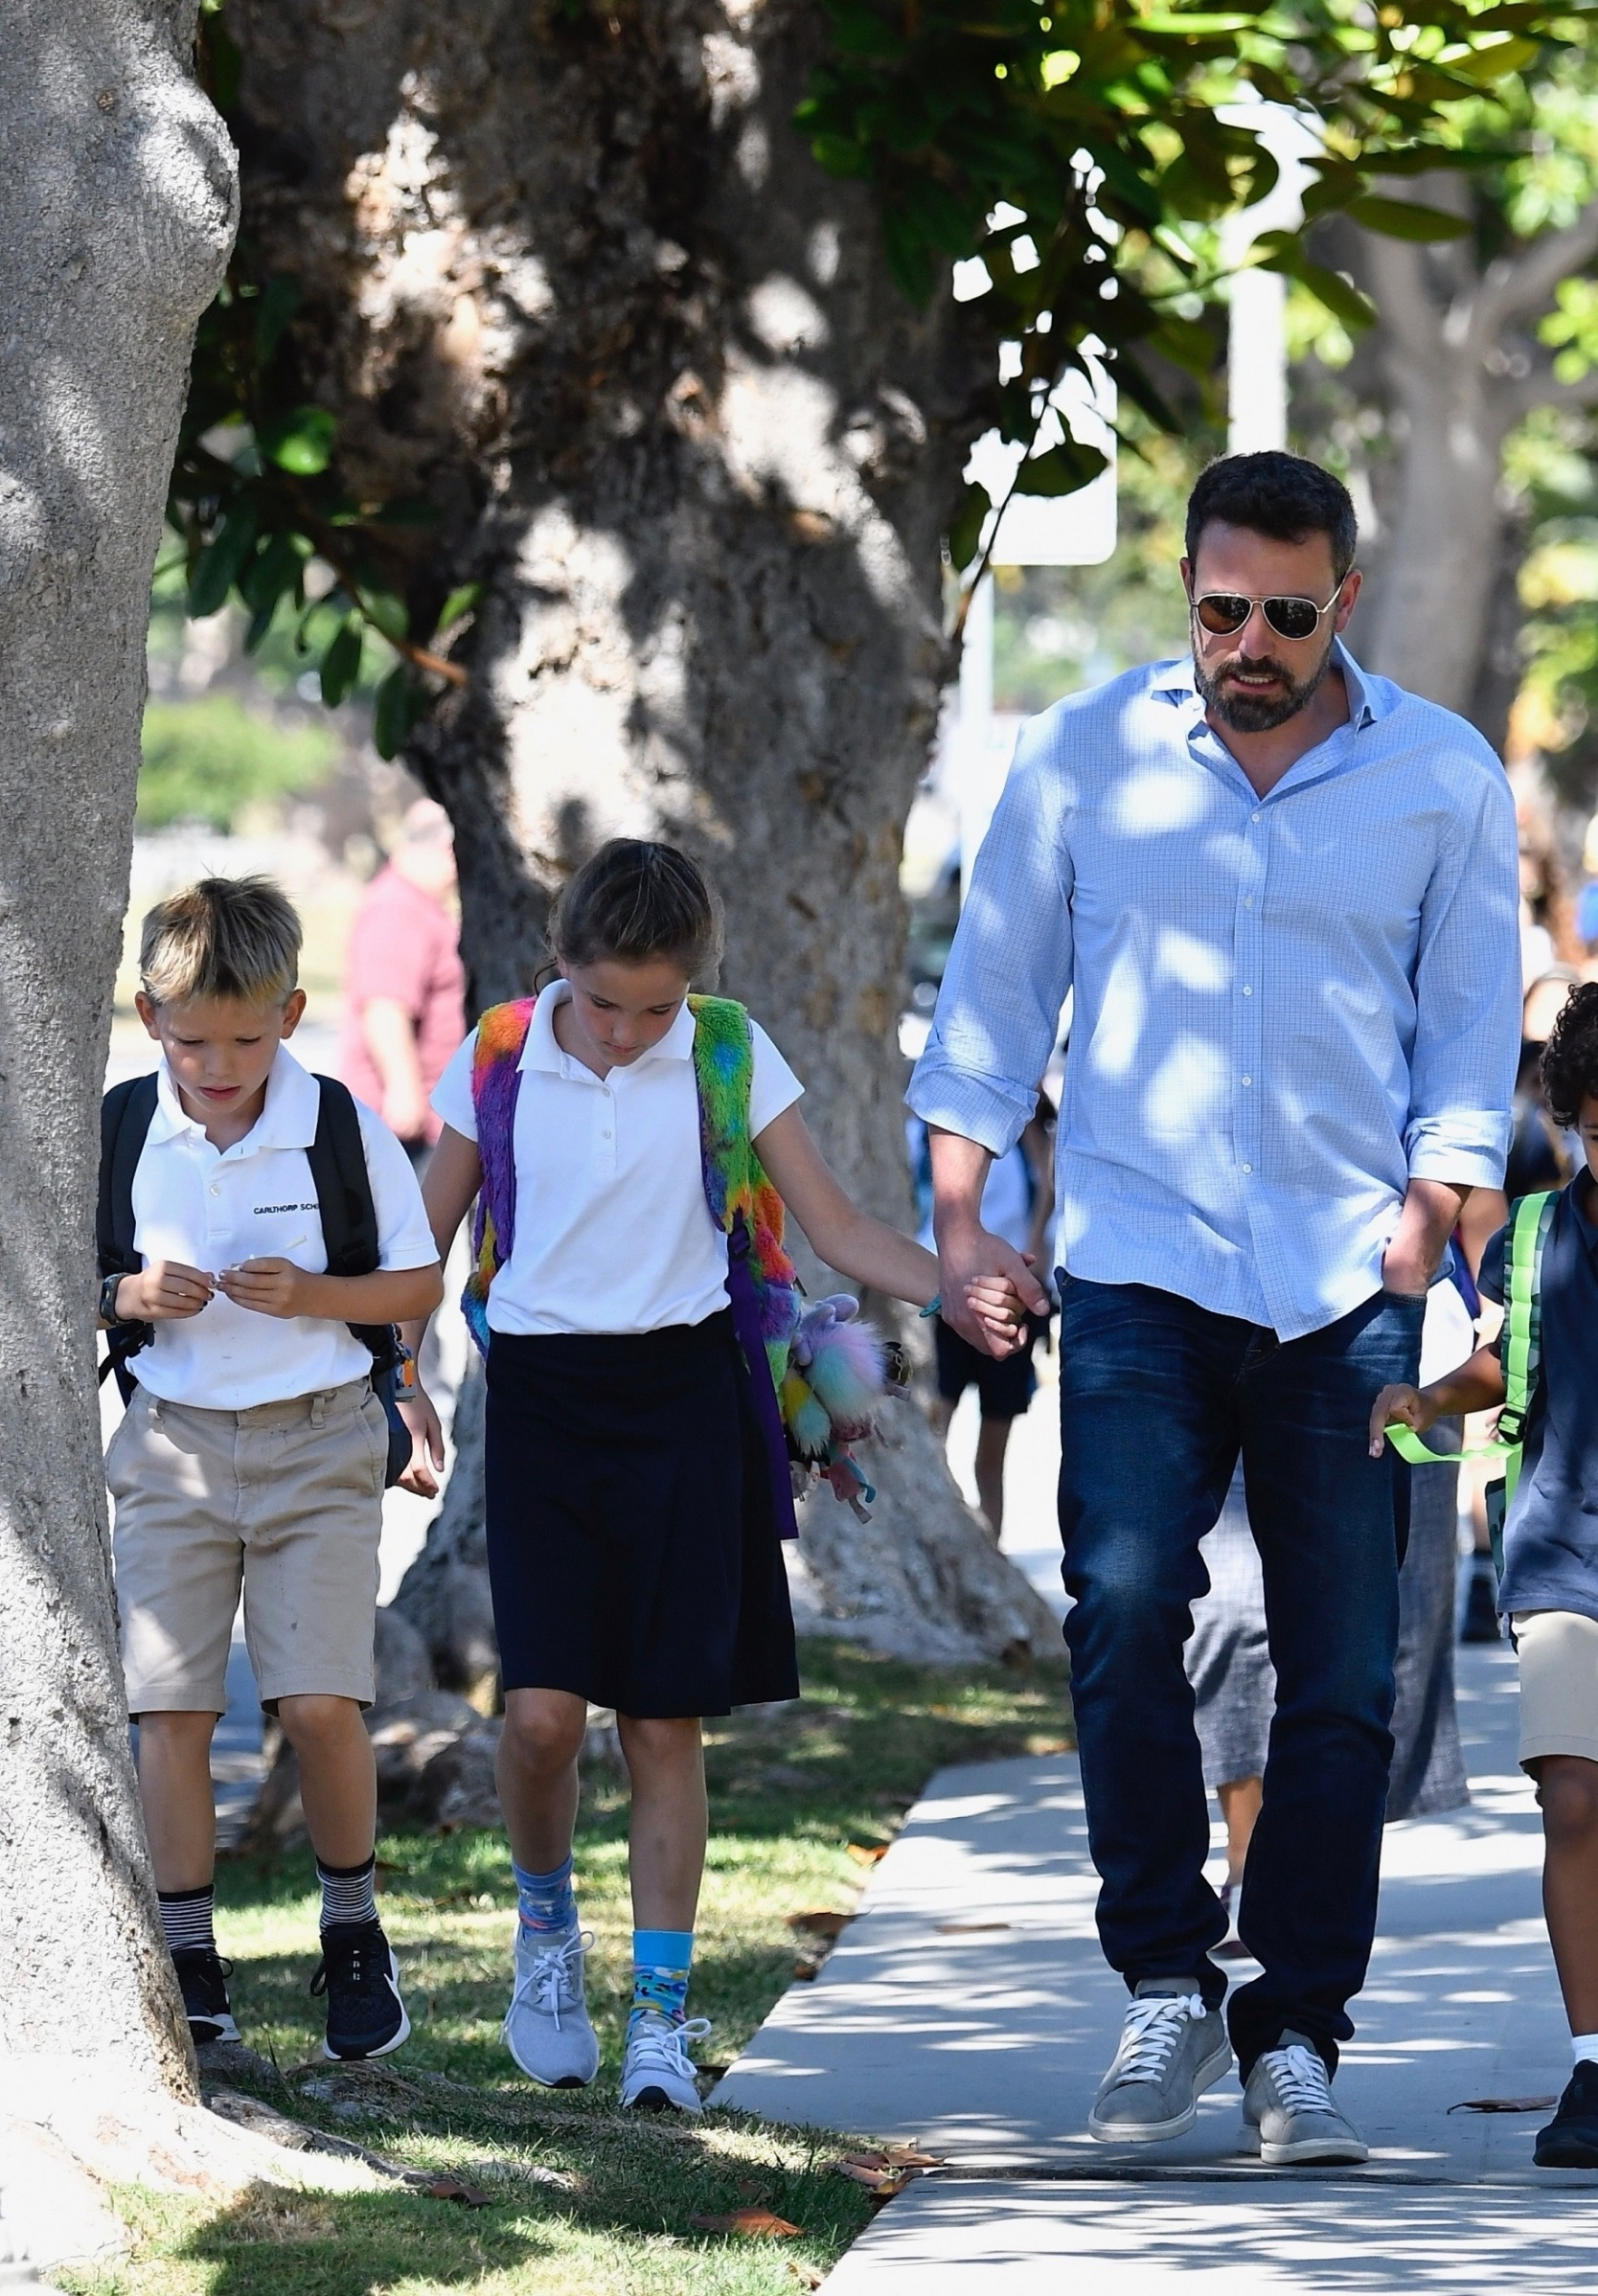 Brentwood, CA  - Ben Affleck is on dad duties as he is seen walking to his kid's school to pick them up on Friday afternoon.  BACKGRID USA 13 SEPTEMBER 2019, Image: 470758864, License: Rights-managed, Restrictions: , Model Release: no, Credit line: Boaz / BACKGRID / Backgrid USA / Profimedia